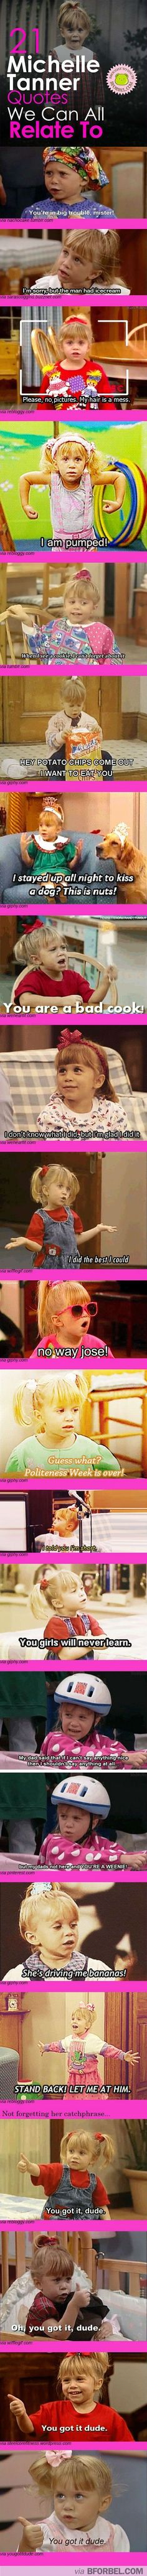 20 Michelle Tanner Quotes life quotes quotes tv quote life quote tv shows funny quotes full house michelle tanner